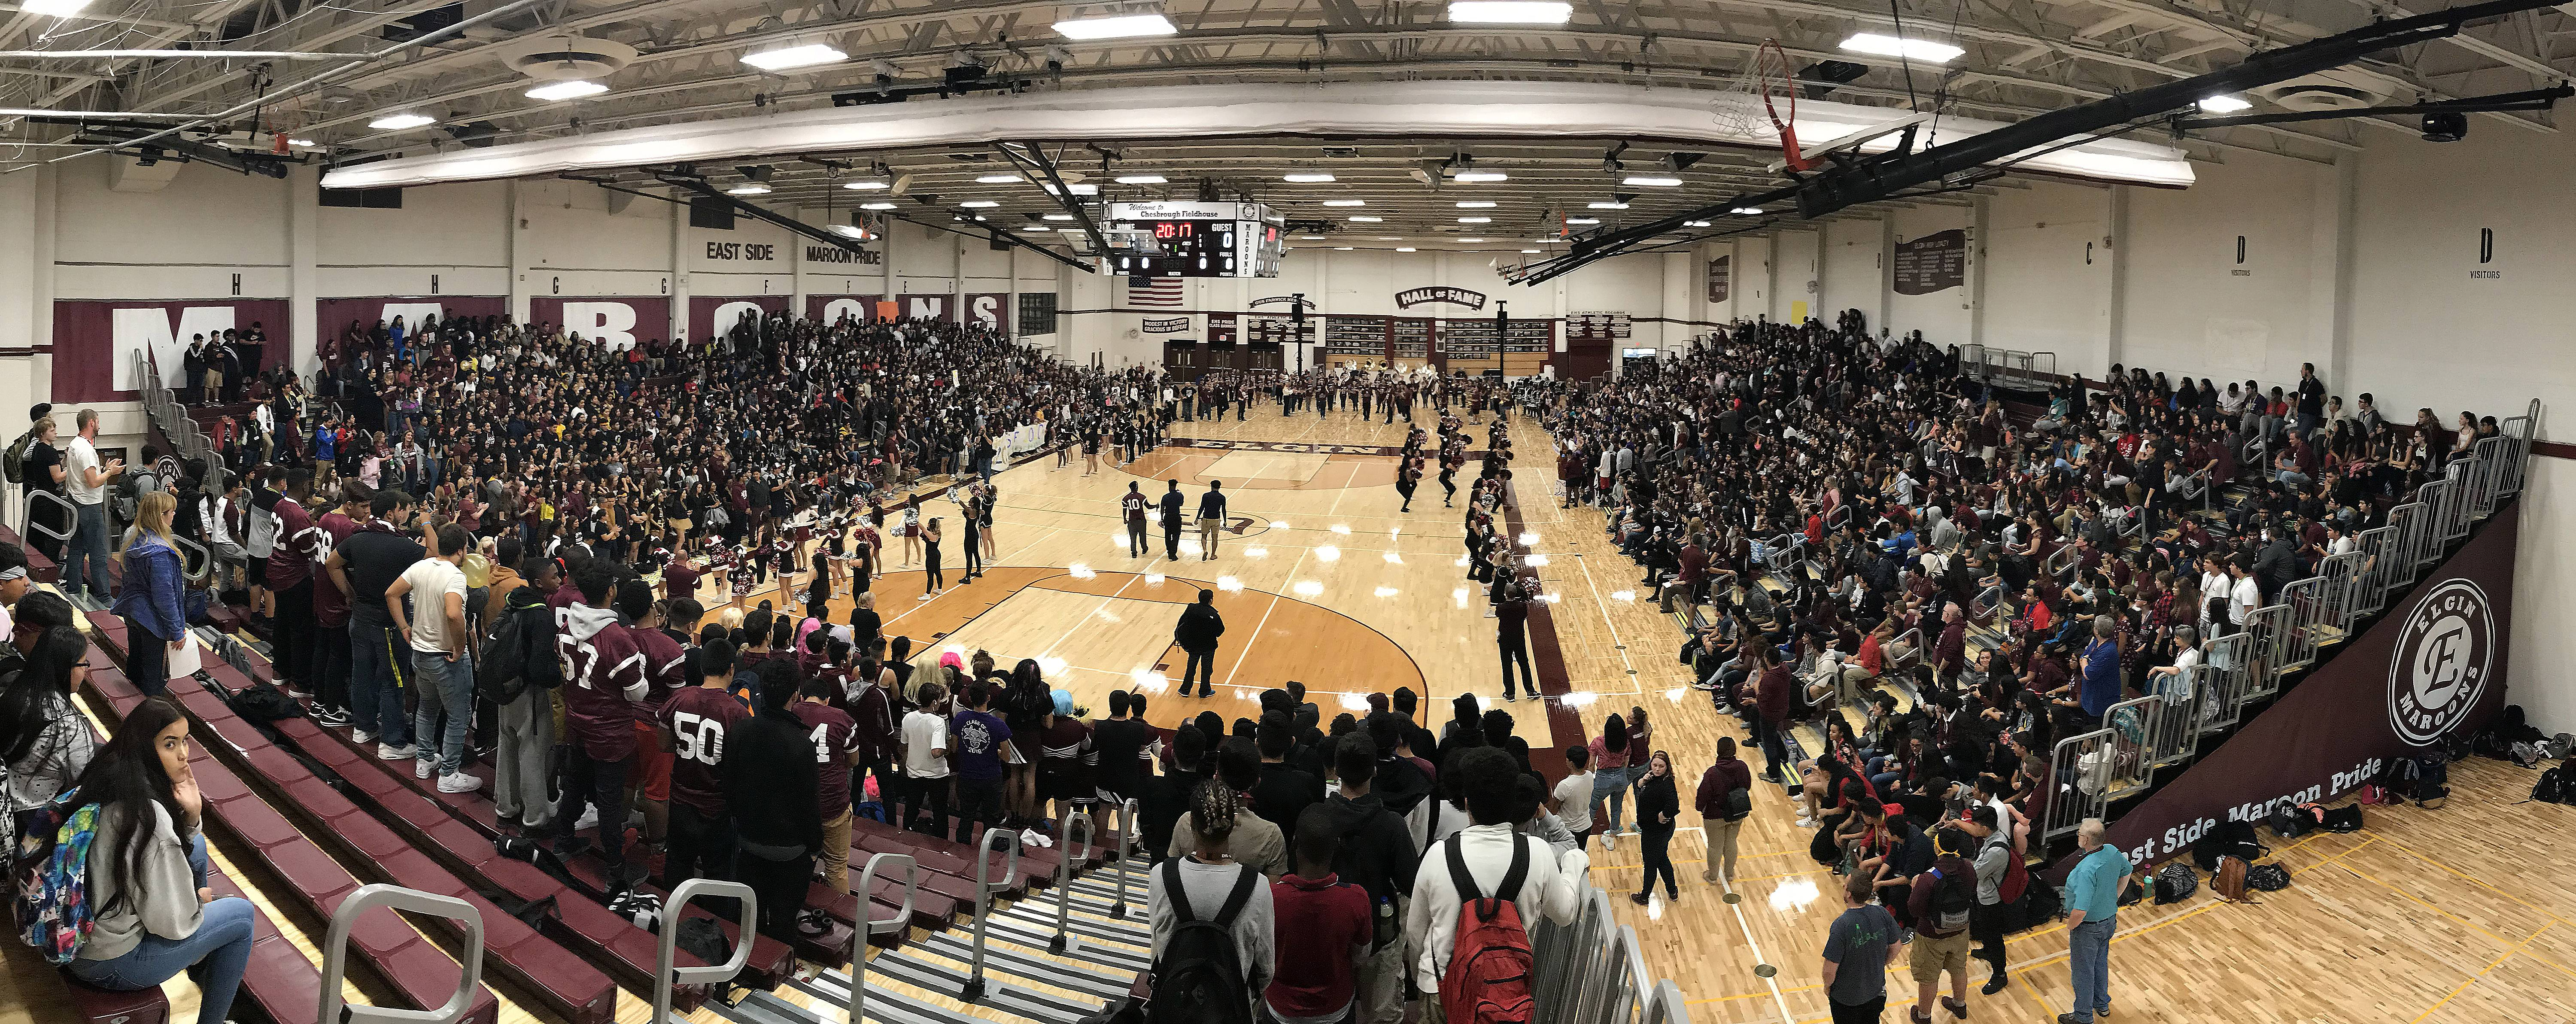 Elgin High School shows off the renovations at Chesbrough Field House during a pep assembly last Friday. They recently installed a new floor, bleachers and scoreboard.